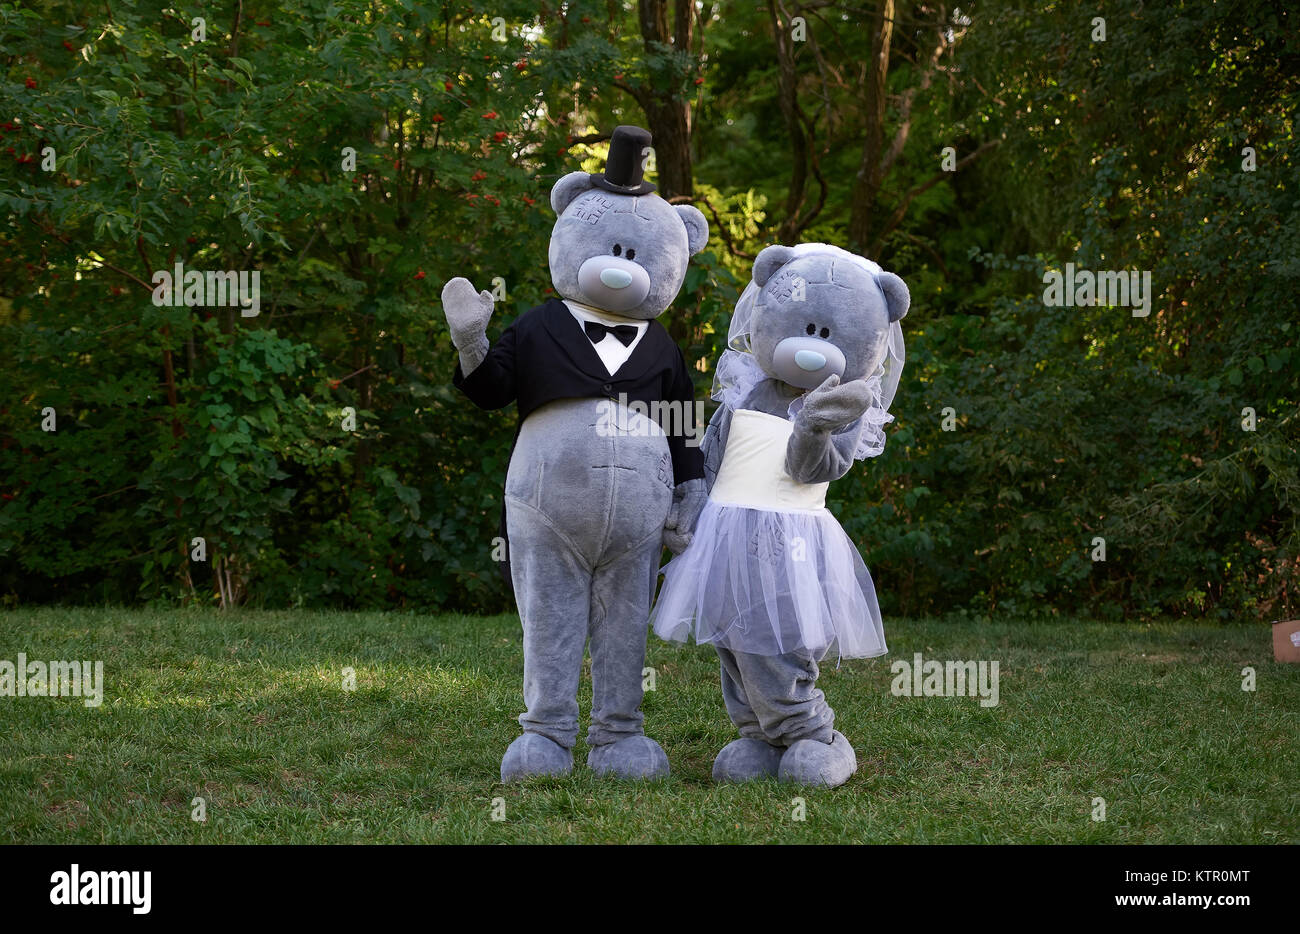 Couple dressed as teddy bear bride and groom standing in park Stock Photo